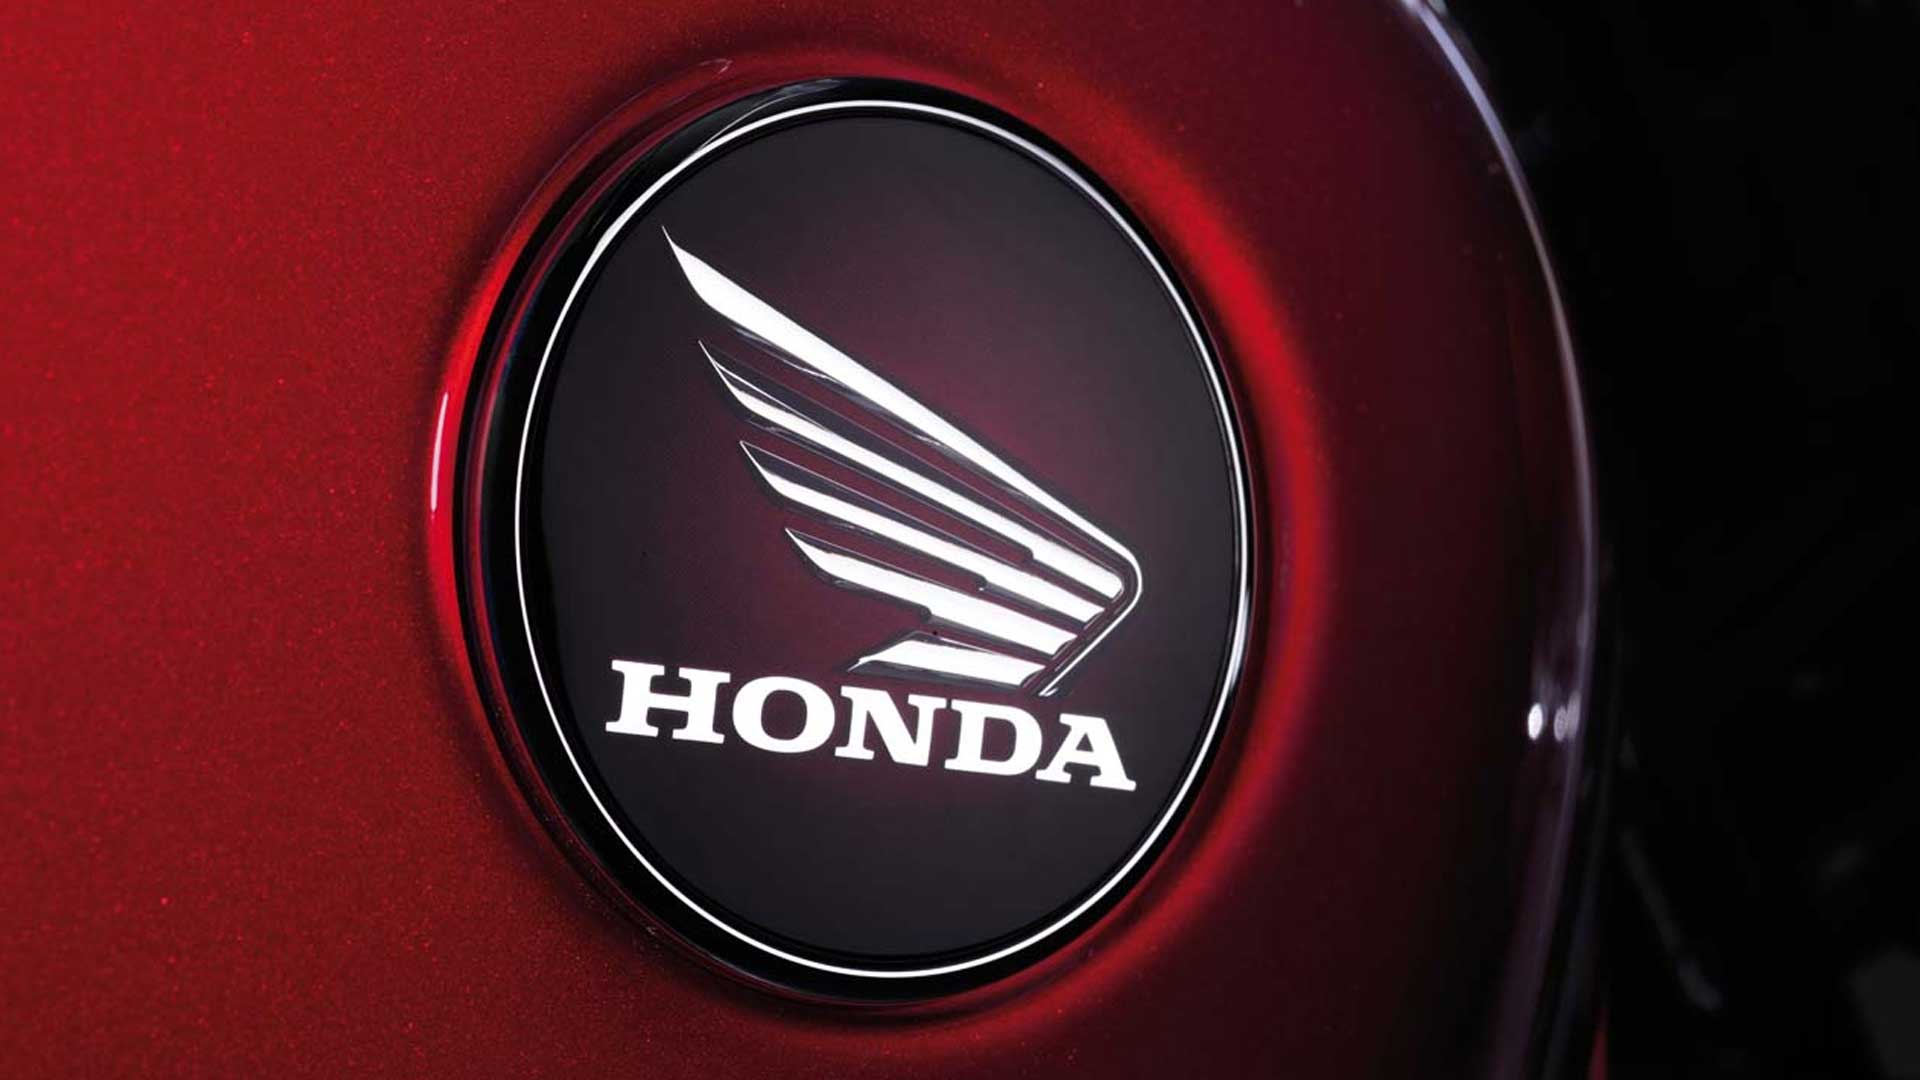 Full Hd Car Logos Wallpapers Hd Honda Logo Wallpapers Pixelstalk Net